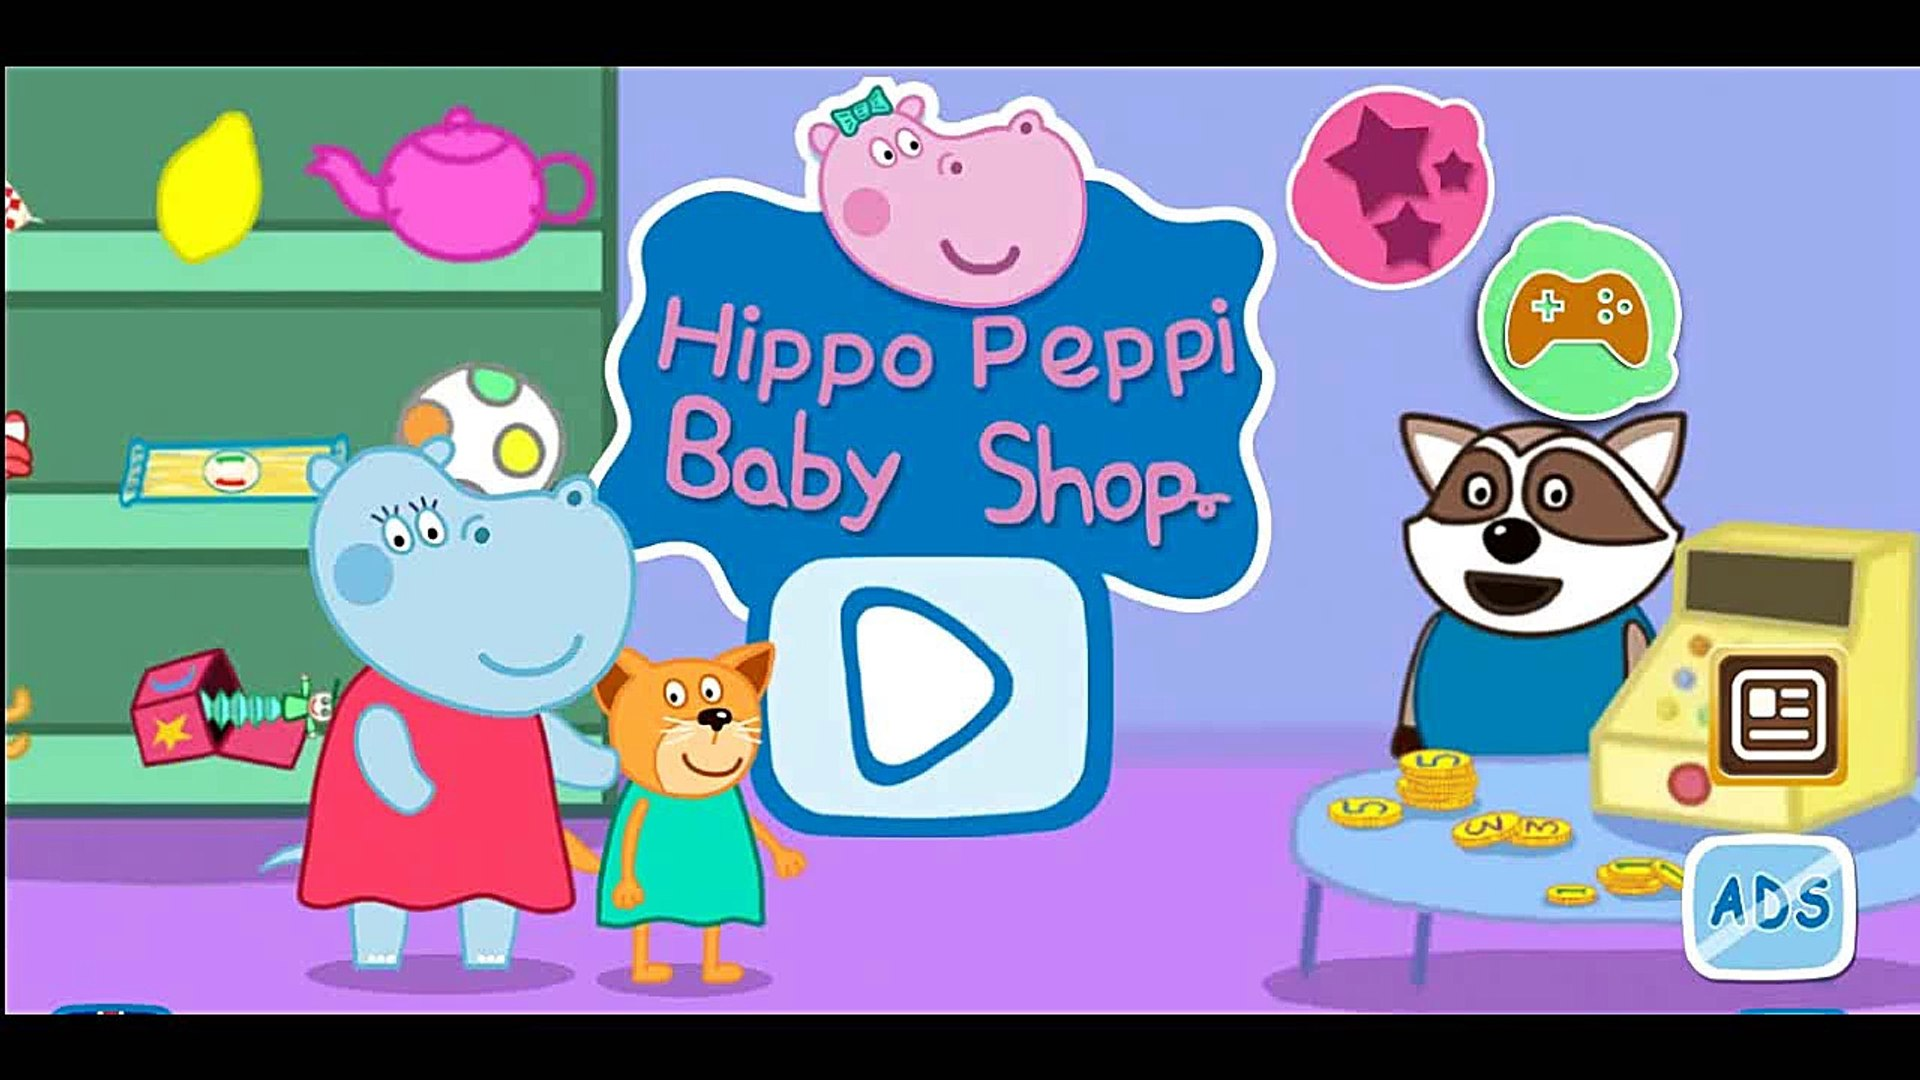 Hippo Peppi Baby Shop, Kids learn Pay in the Shop, Education App Gameplay for Kids